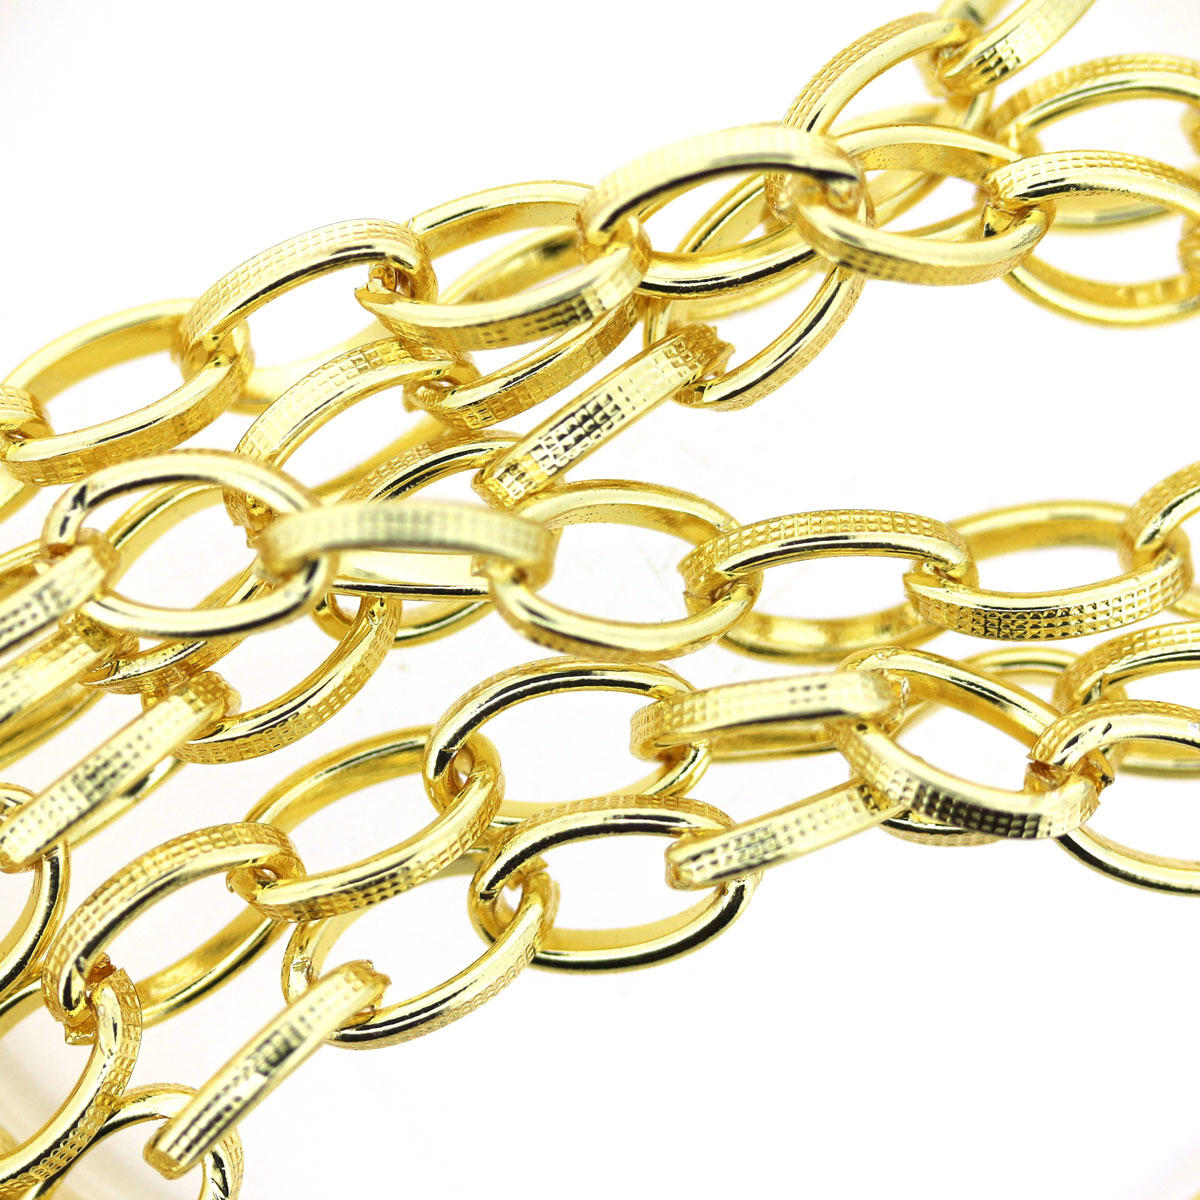 Gold Patterned Chain